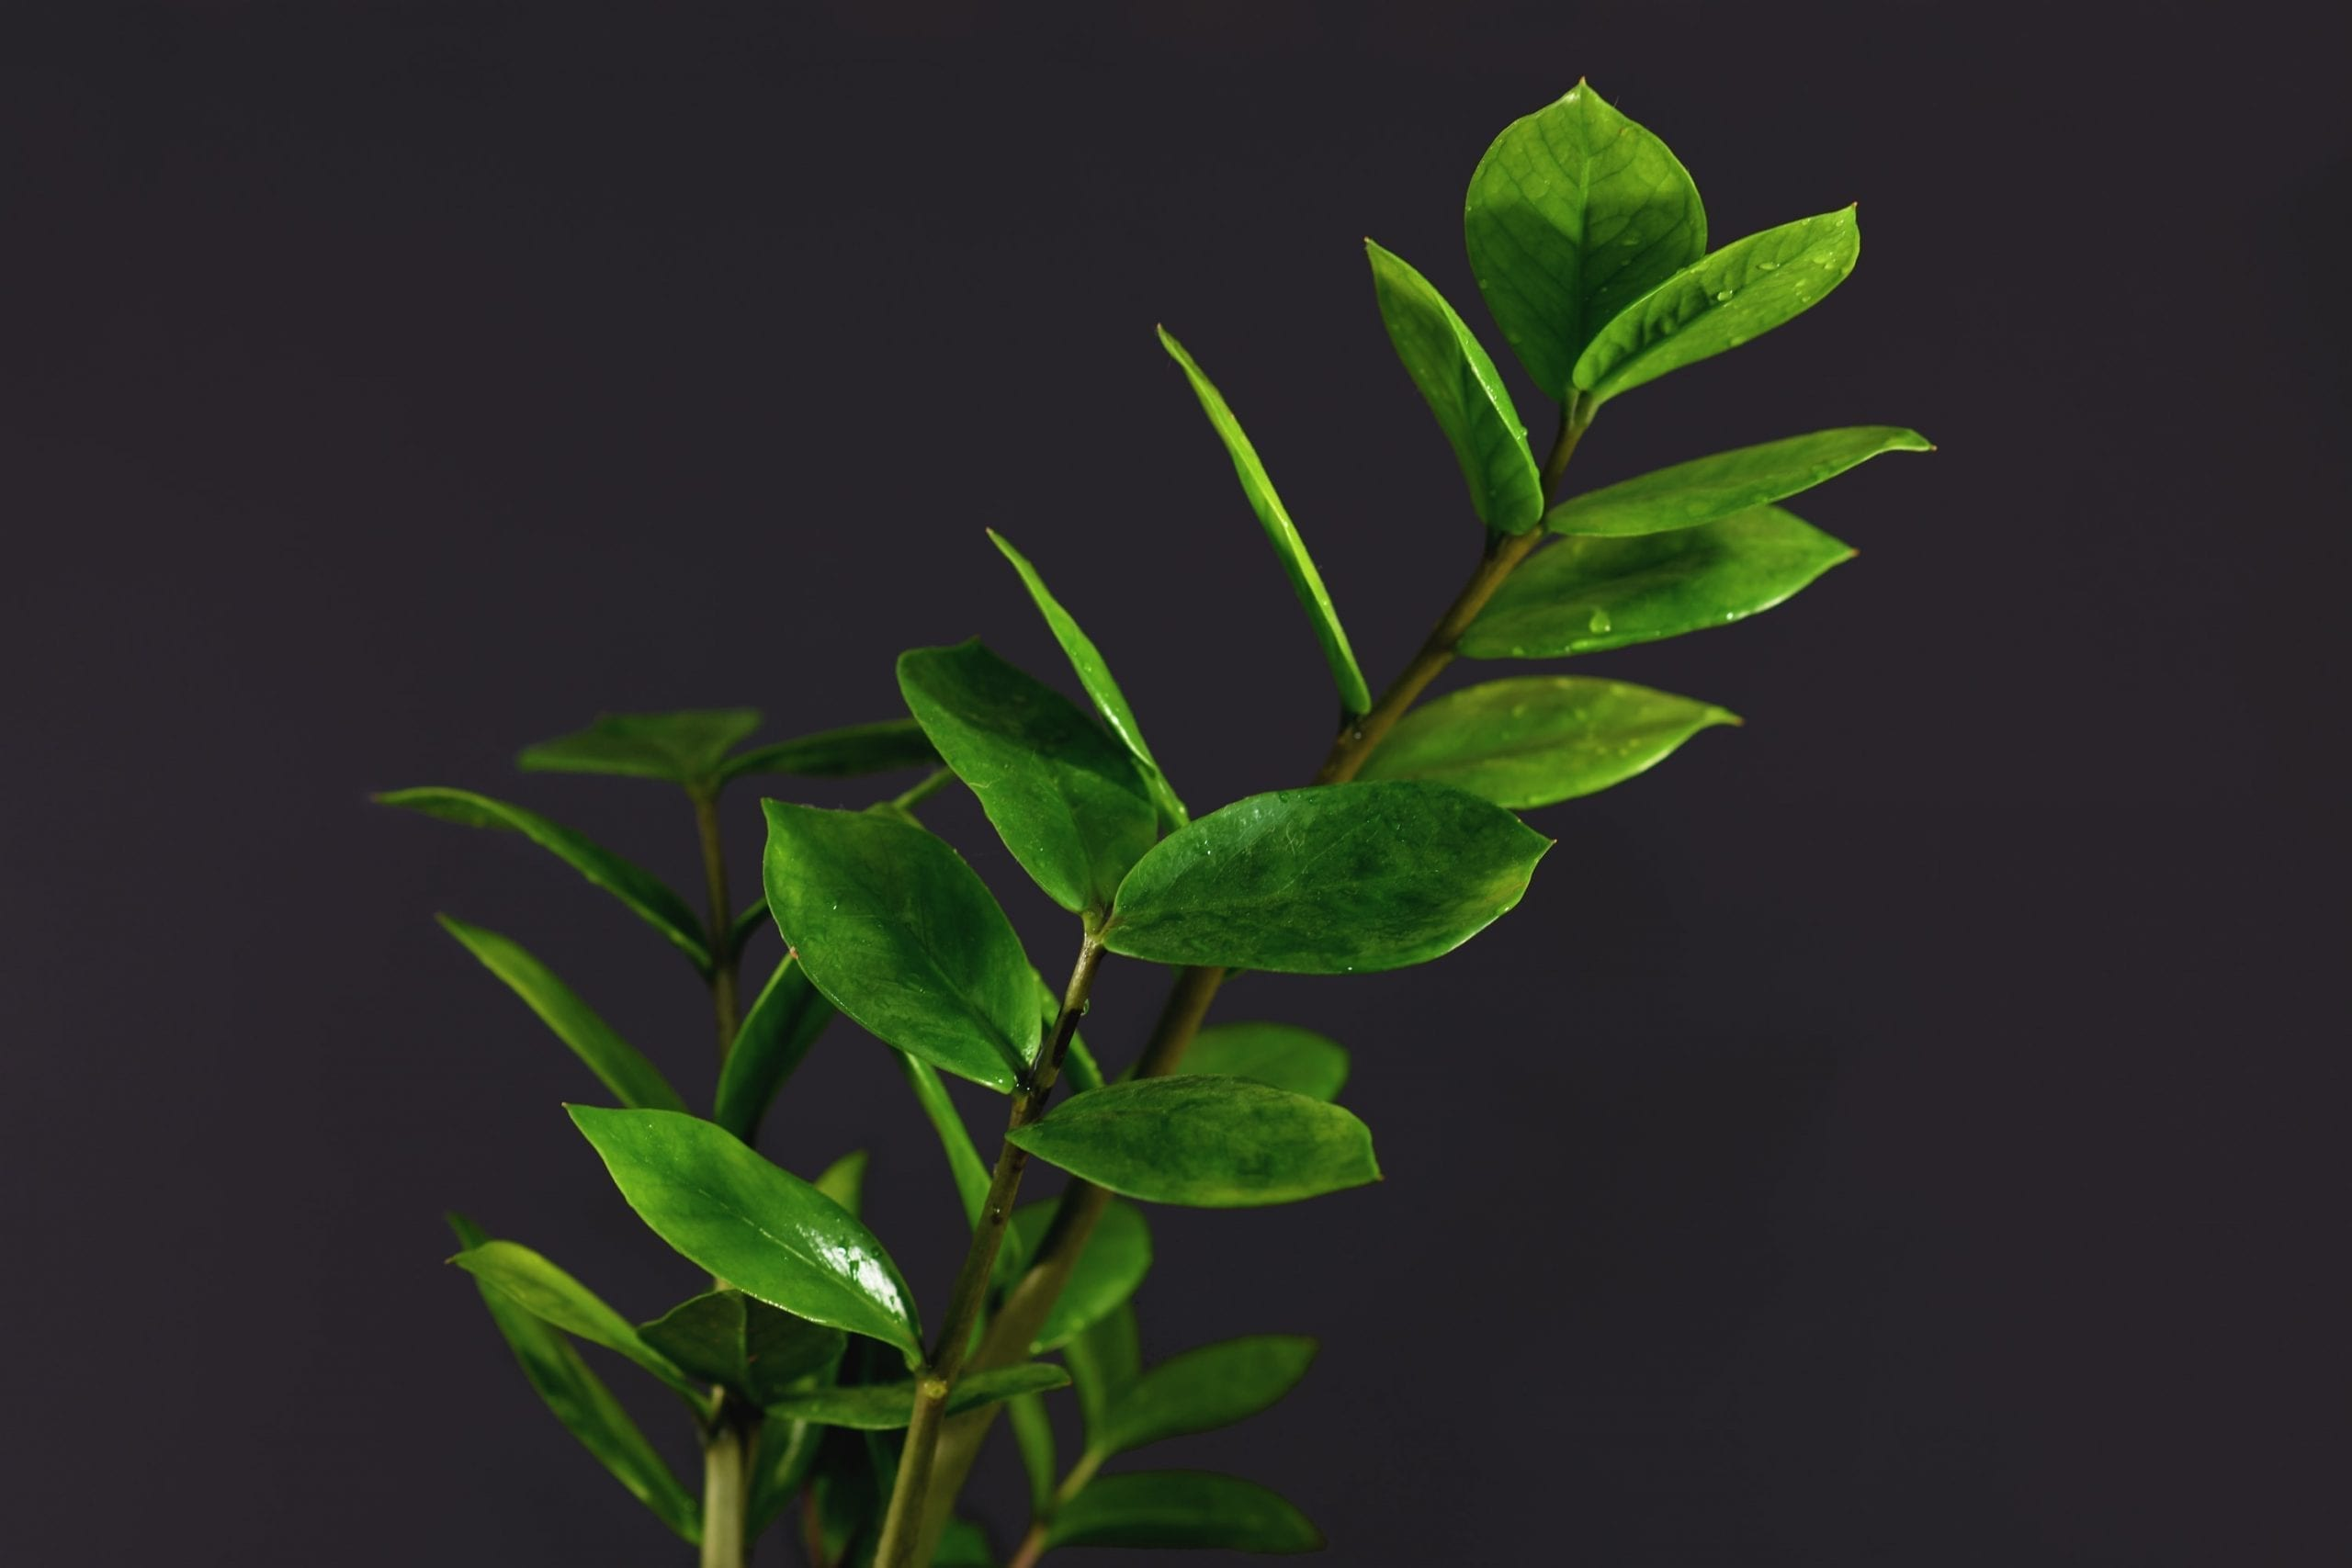 favorite houseplant Branch of tropical 'Zamioculcas Zamiifolia' house plant on dark black background, also called 'ZZ plant' or 'Emerald Palm'